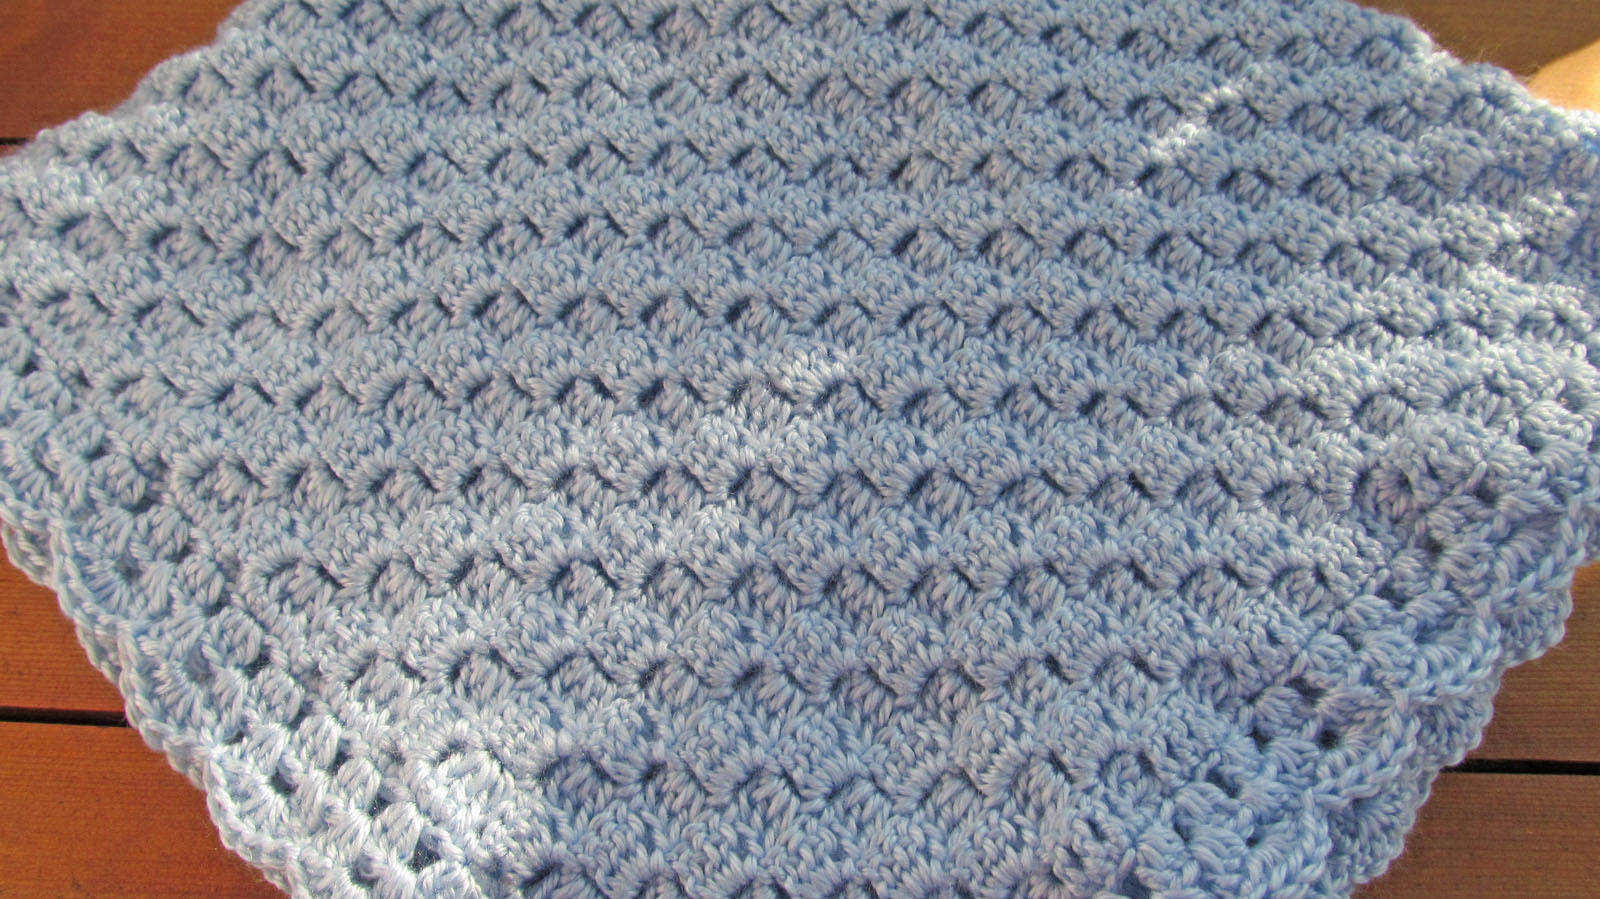 Soft Crochet Baby Blanket, Light Blue - Handmade